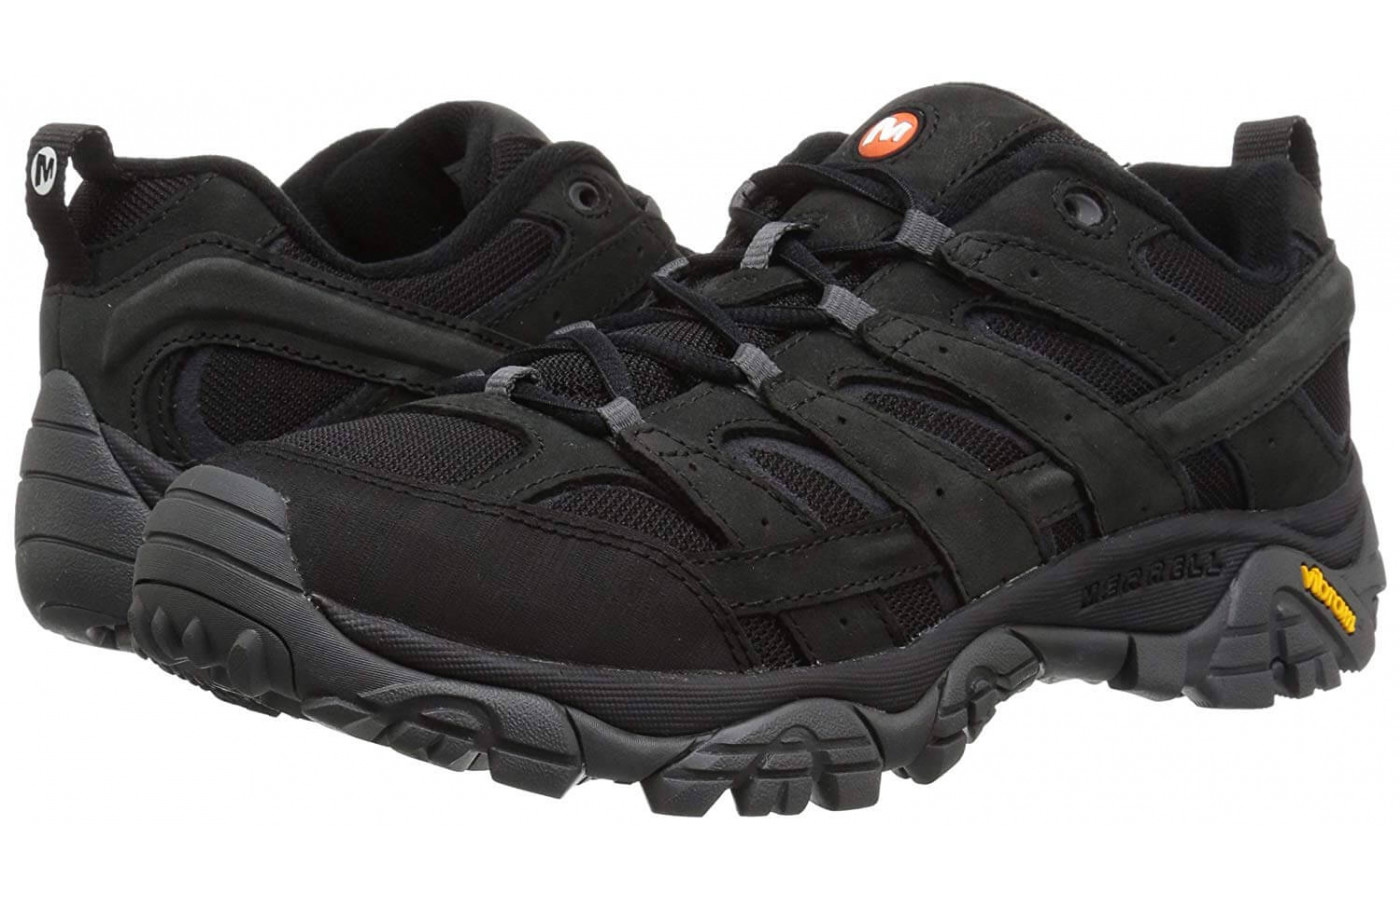 Merrell Moab 2 Smooth left right